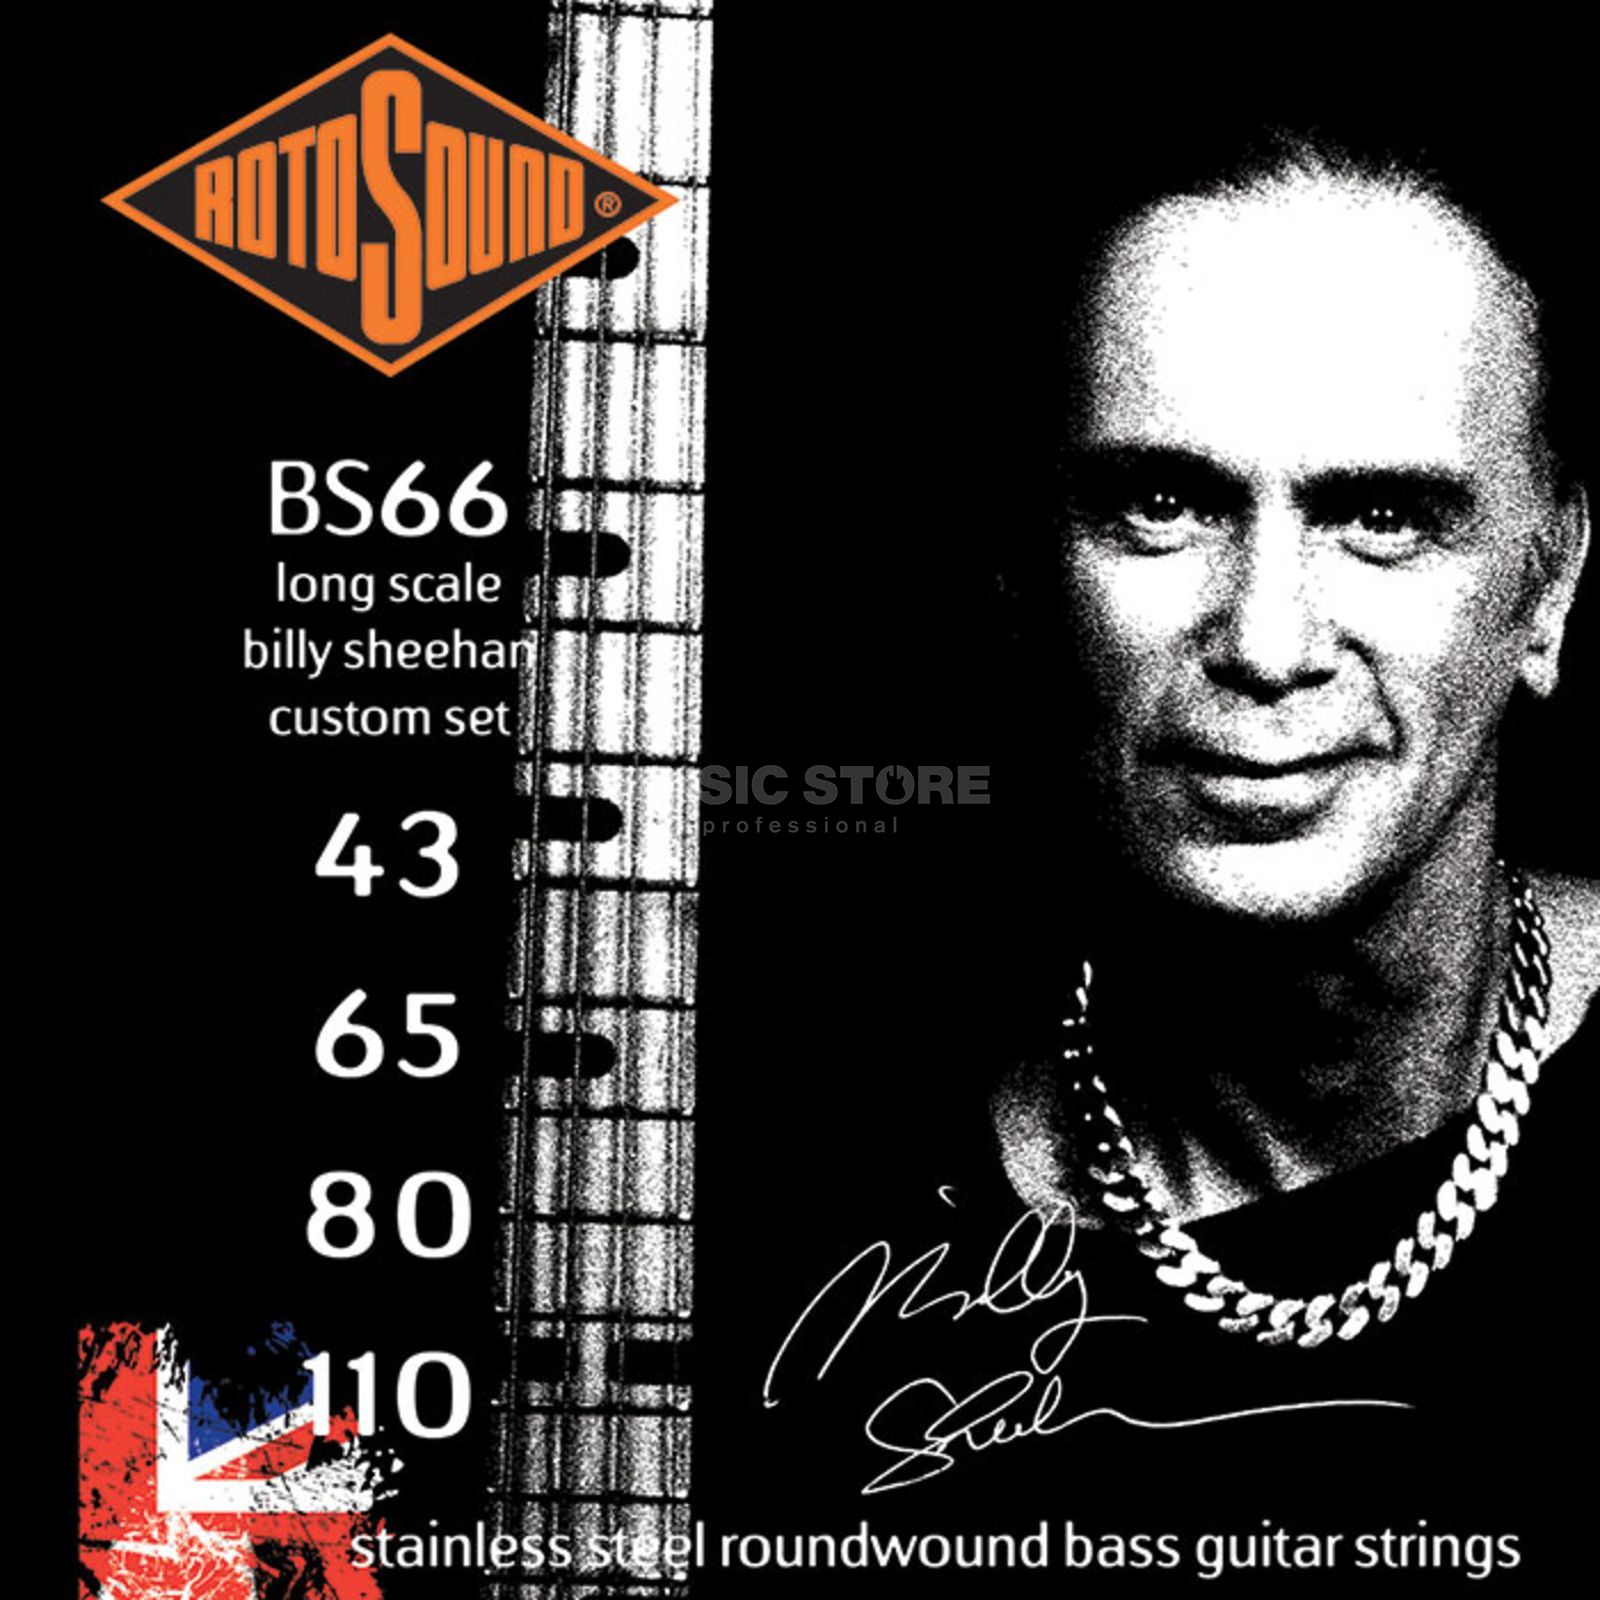 Rotosound Bass Strings BS66 43-110 4 Set Billy Sheehan, Stainless Steel Изображение товара